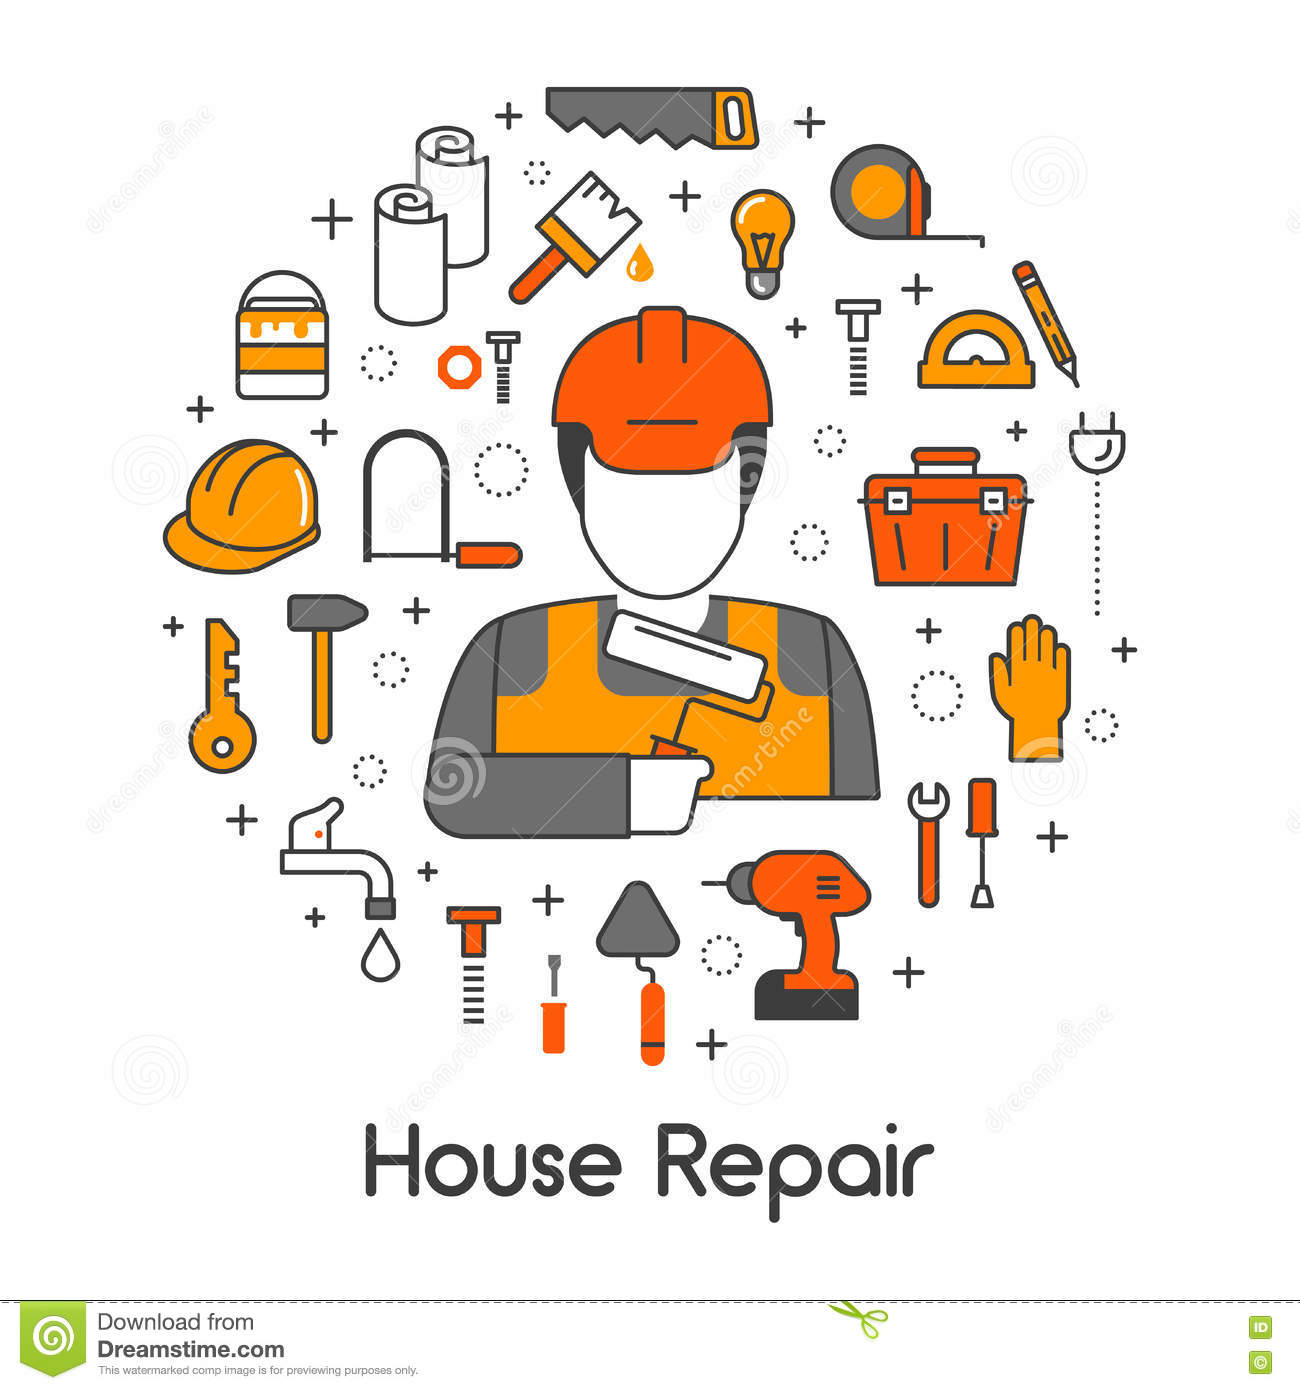 How To boost Your private home's Value Easily house-repair-renovation-line-art-thin-icons-set-repairman-tools-vector-77815972